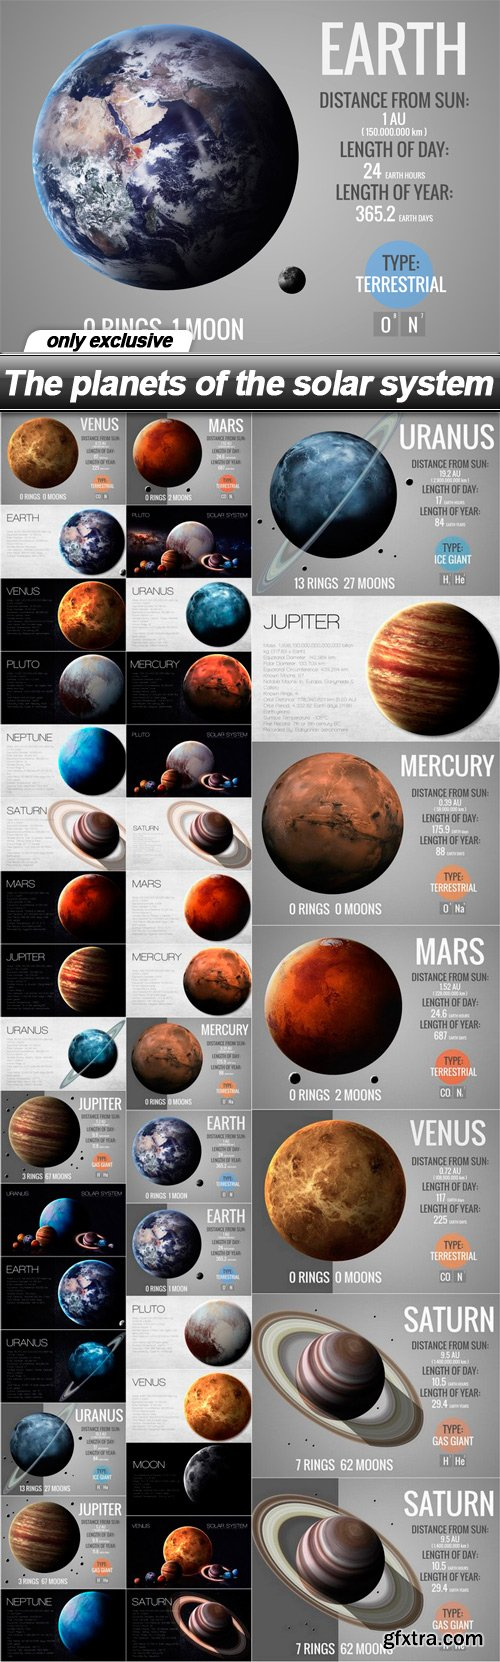 The planets of the solar system - 39 UHQ JPEG